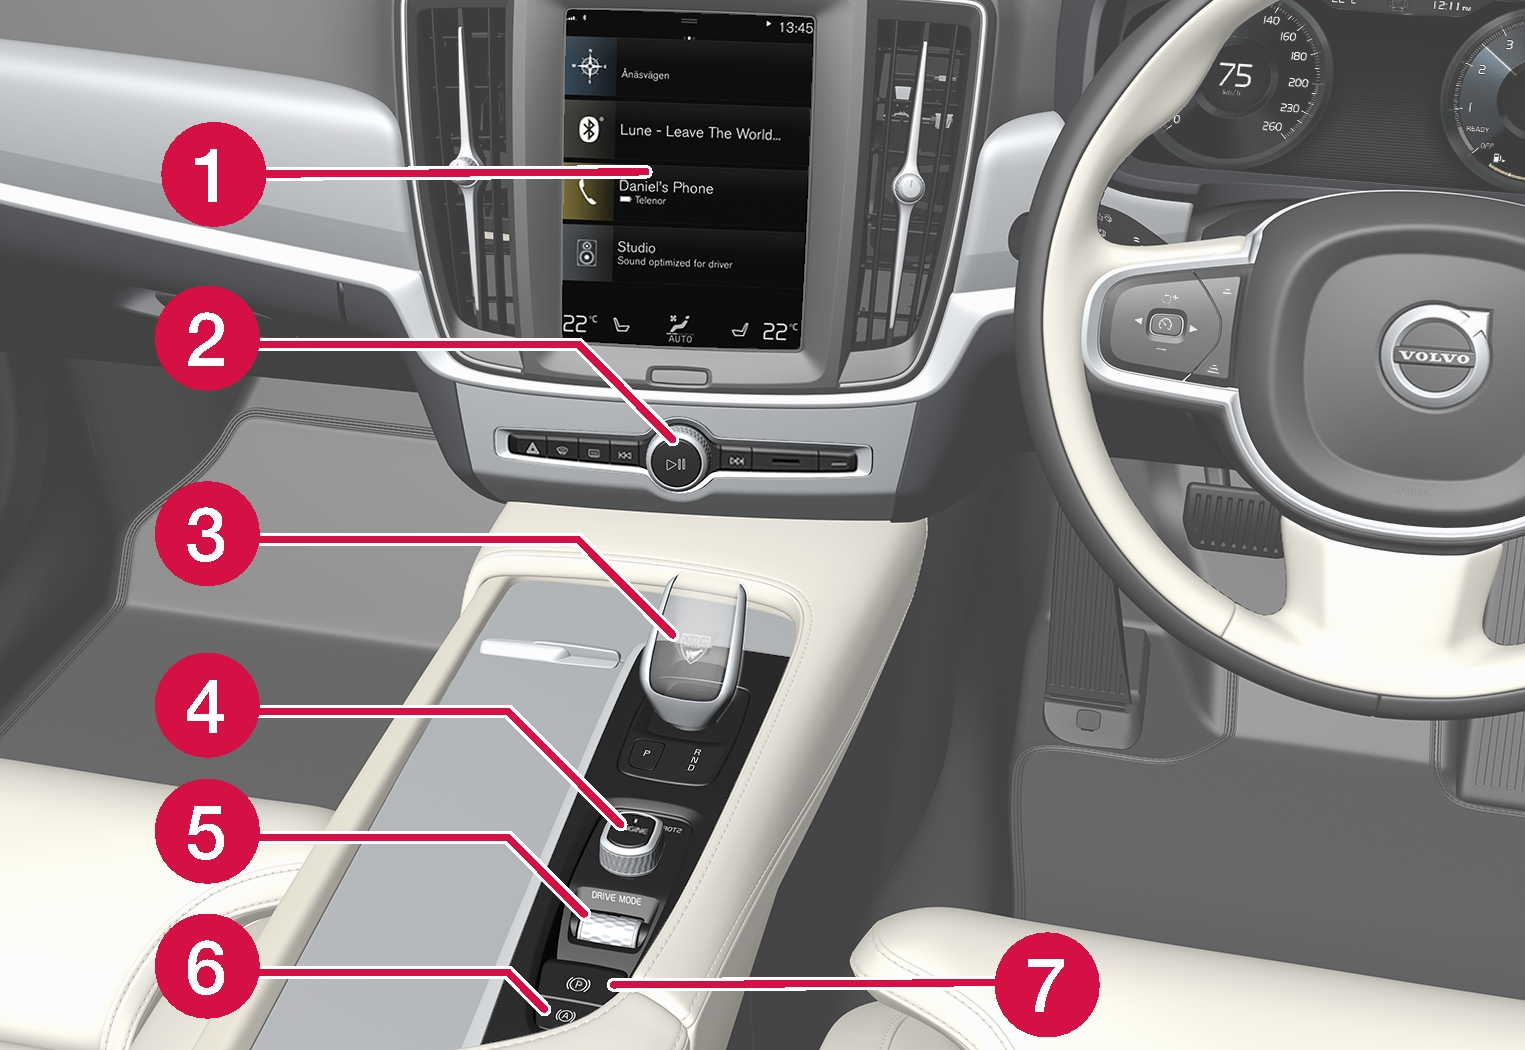 P5-1917-S/V90-H/CC-Controls in tunnel and center console, right hand drive